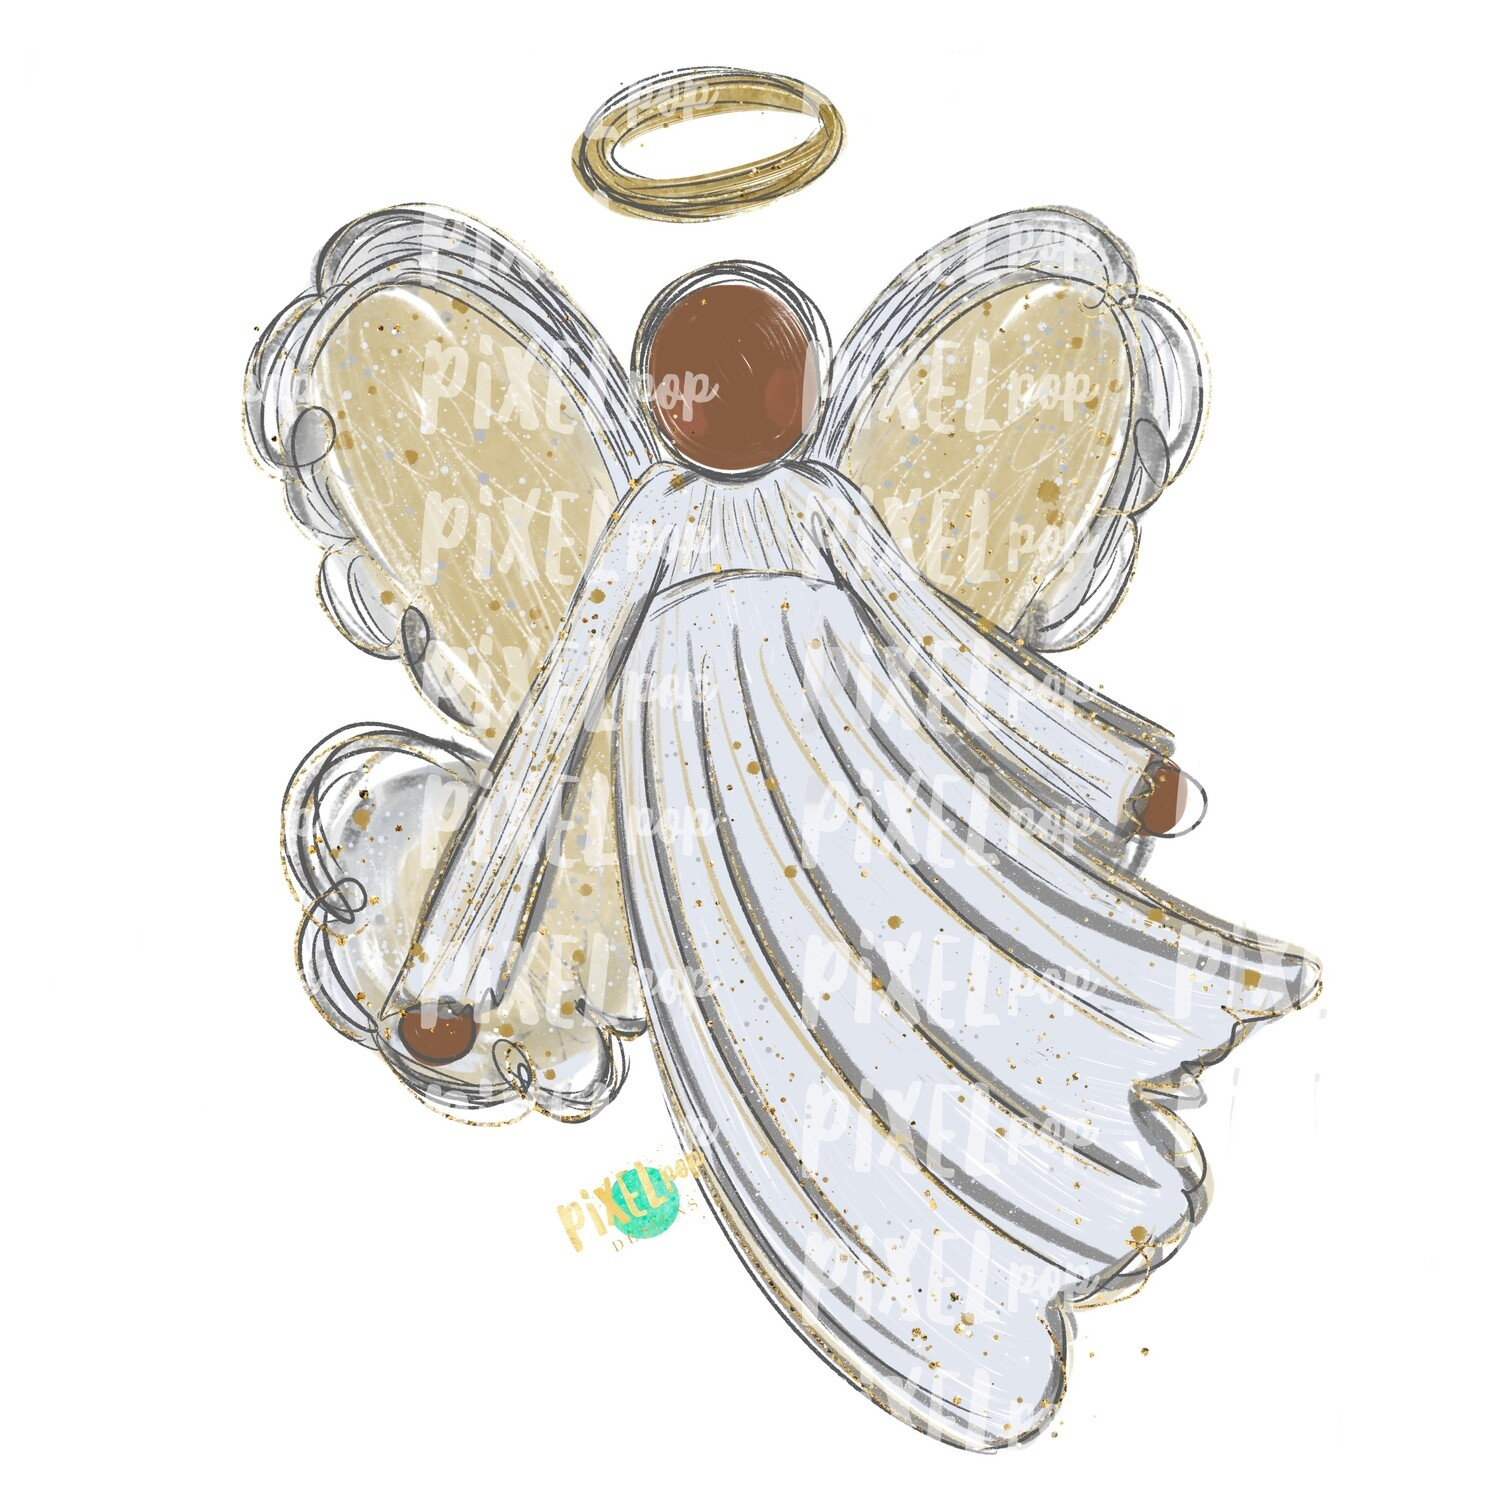 Dark Skin Angel Watercolor Digital Art Sublimation PNG | Ornament Design | Hand Painted | Digital Download | Printable | Christmas | Loss